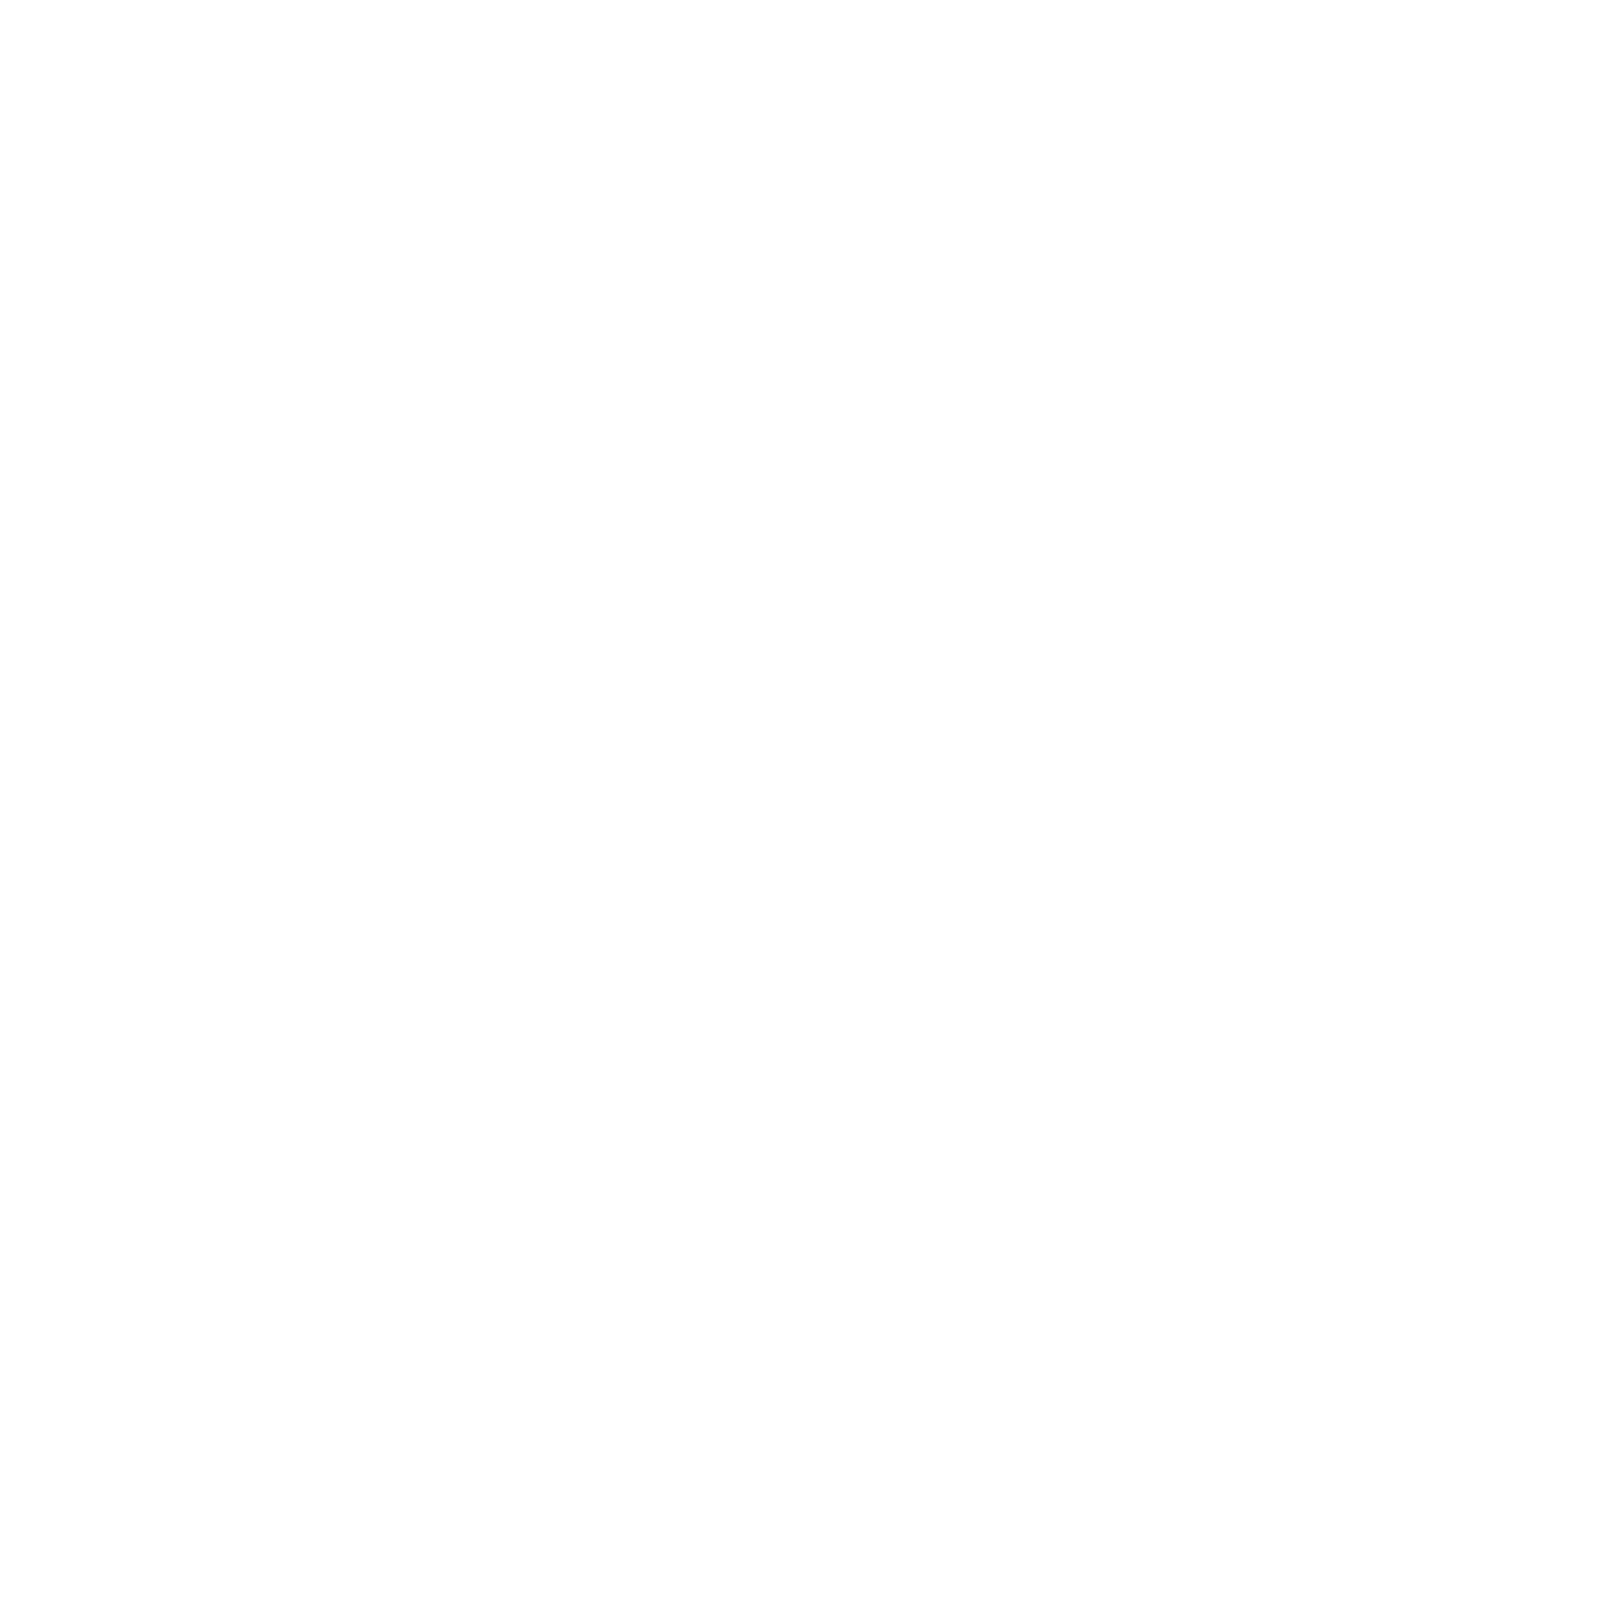 Dell-project-logo